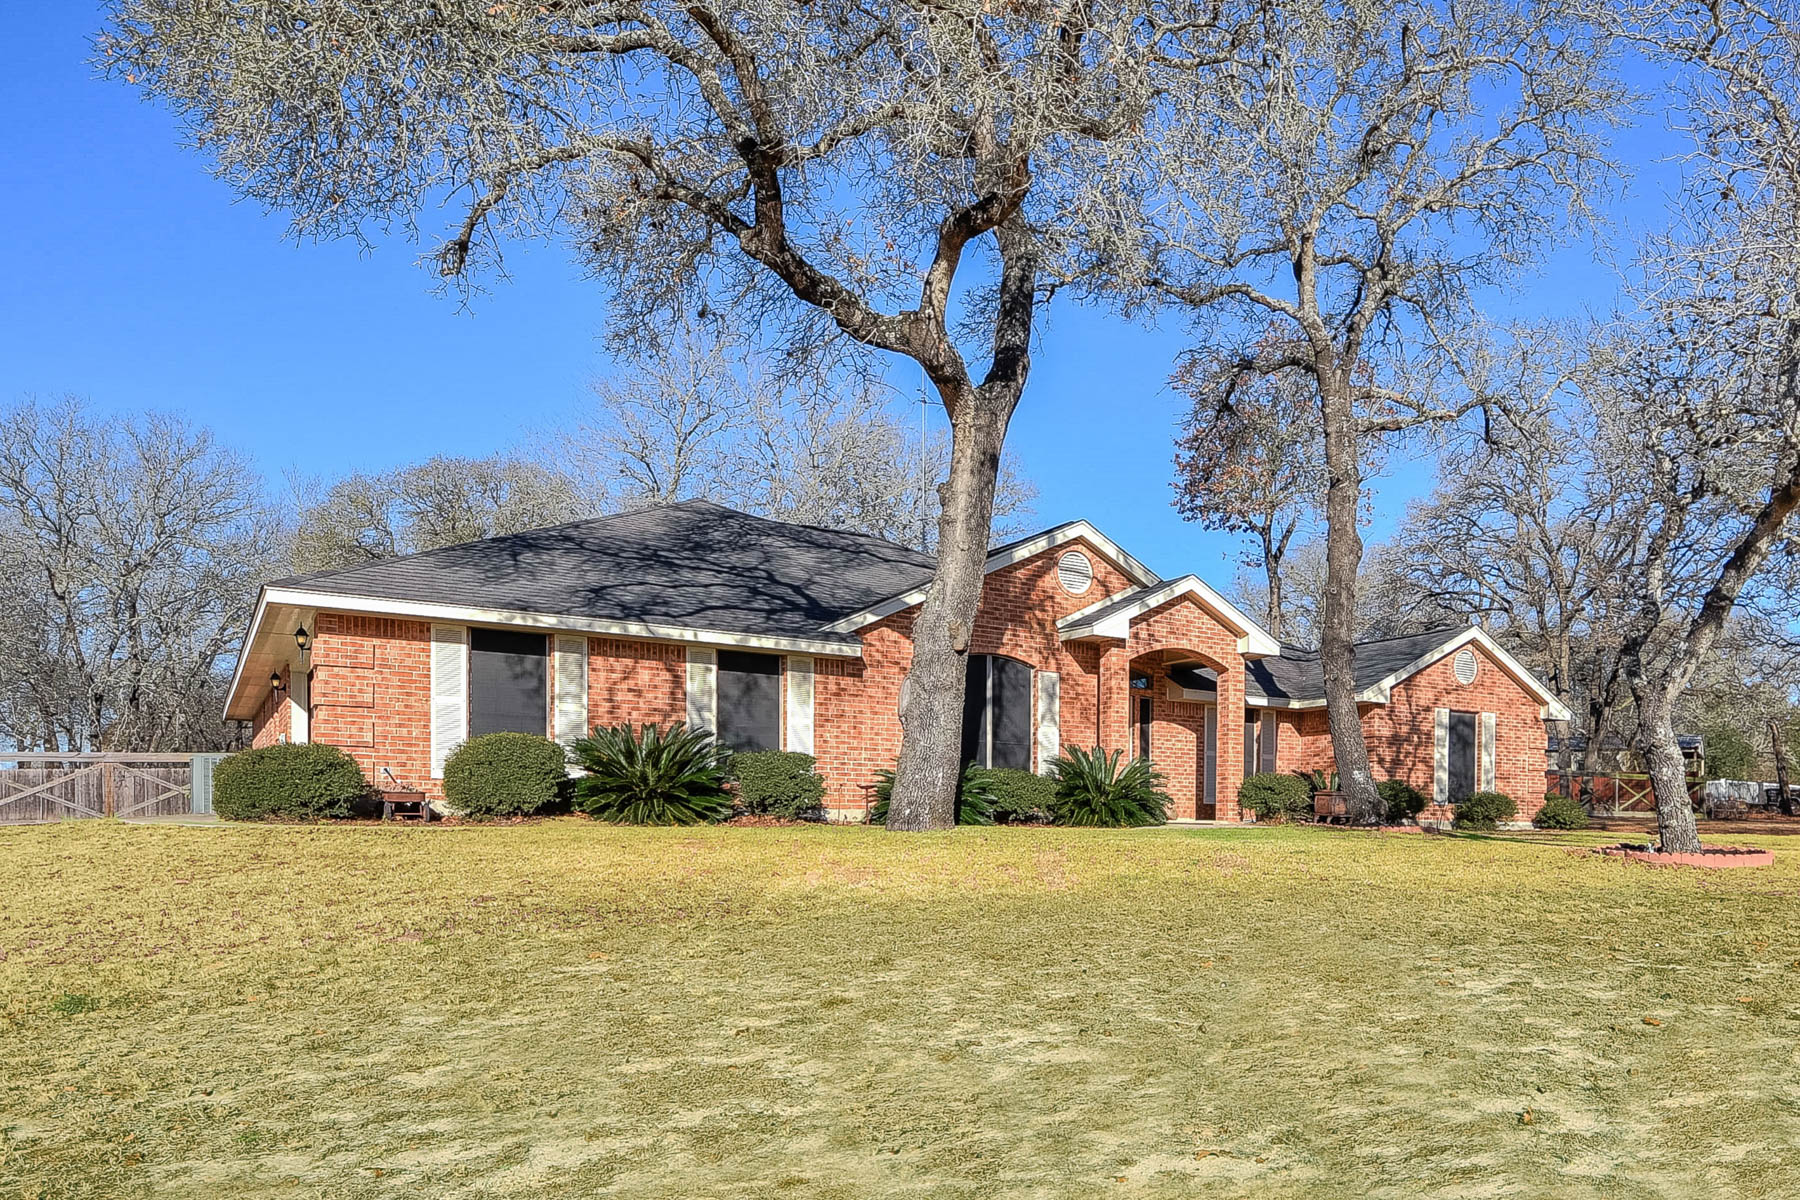 Single Family Home for Sale at Beautiful La Vernia Home 157 Rosewood Drive La Vernia, Texas 78121 United States